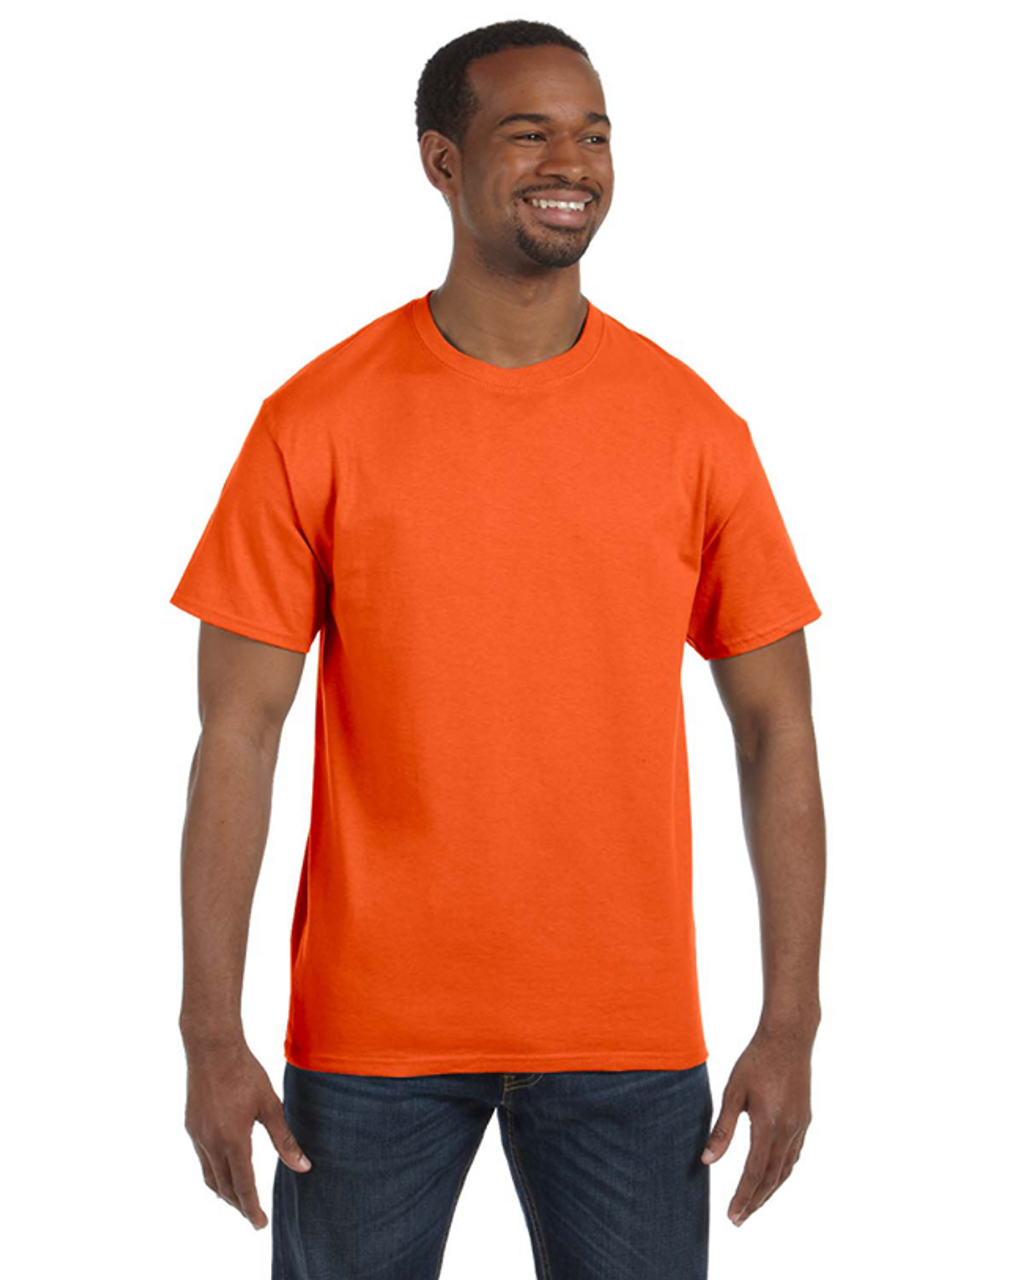 Safety Orange 29M Jerzees 50/50 Heavyweight Blend™ T-Shirt | Blankclothing.ca